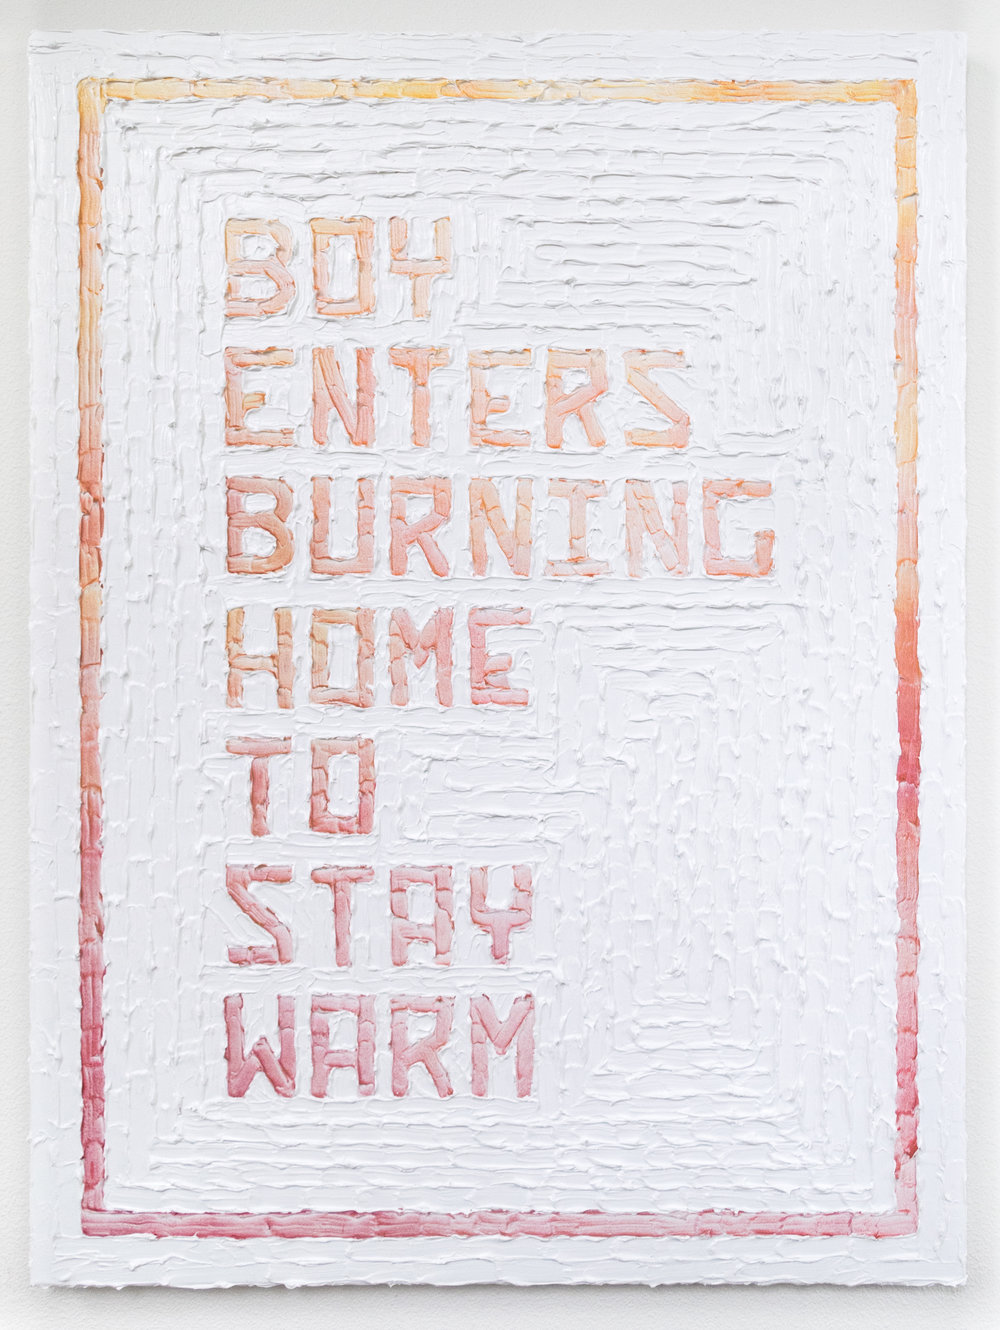 Boy Enters Burning Home to Stay Warm  Acrylic, enamel, canvas  30 x 40 inches  2017